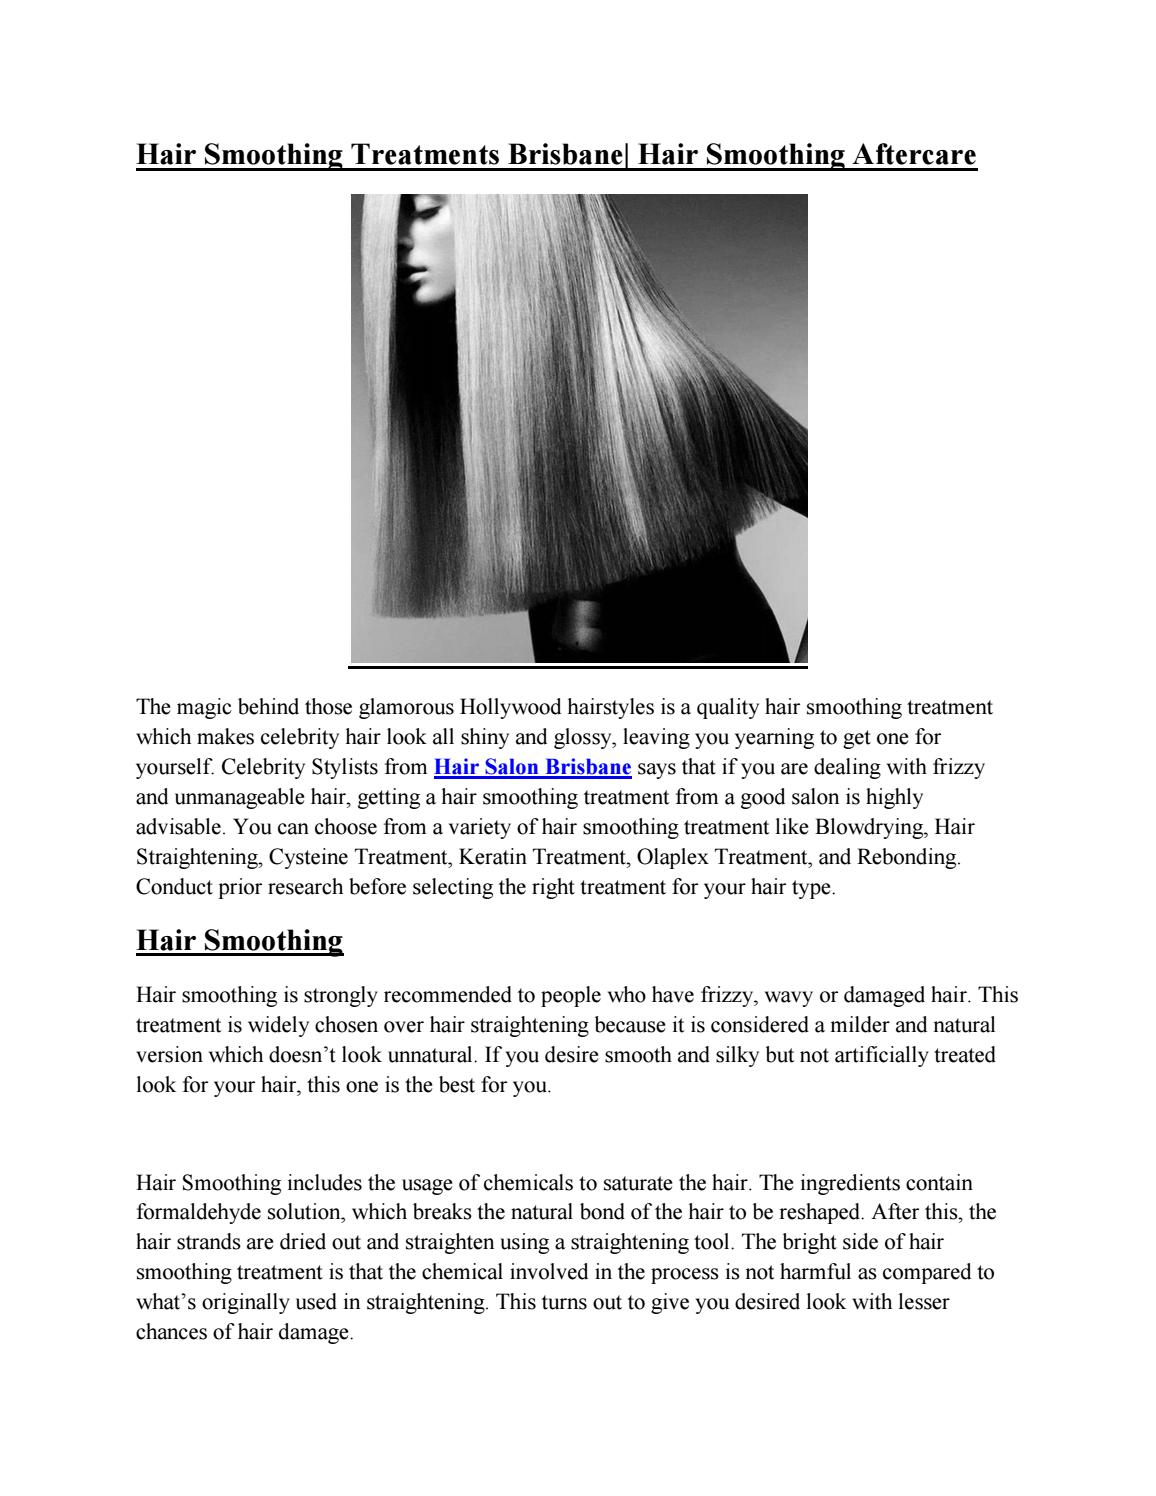 Hair Smoothing Treatments Brisbane Hair Smoothing After Care By Tsiknaris Hair Issuu